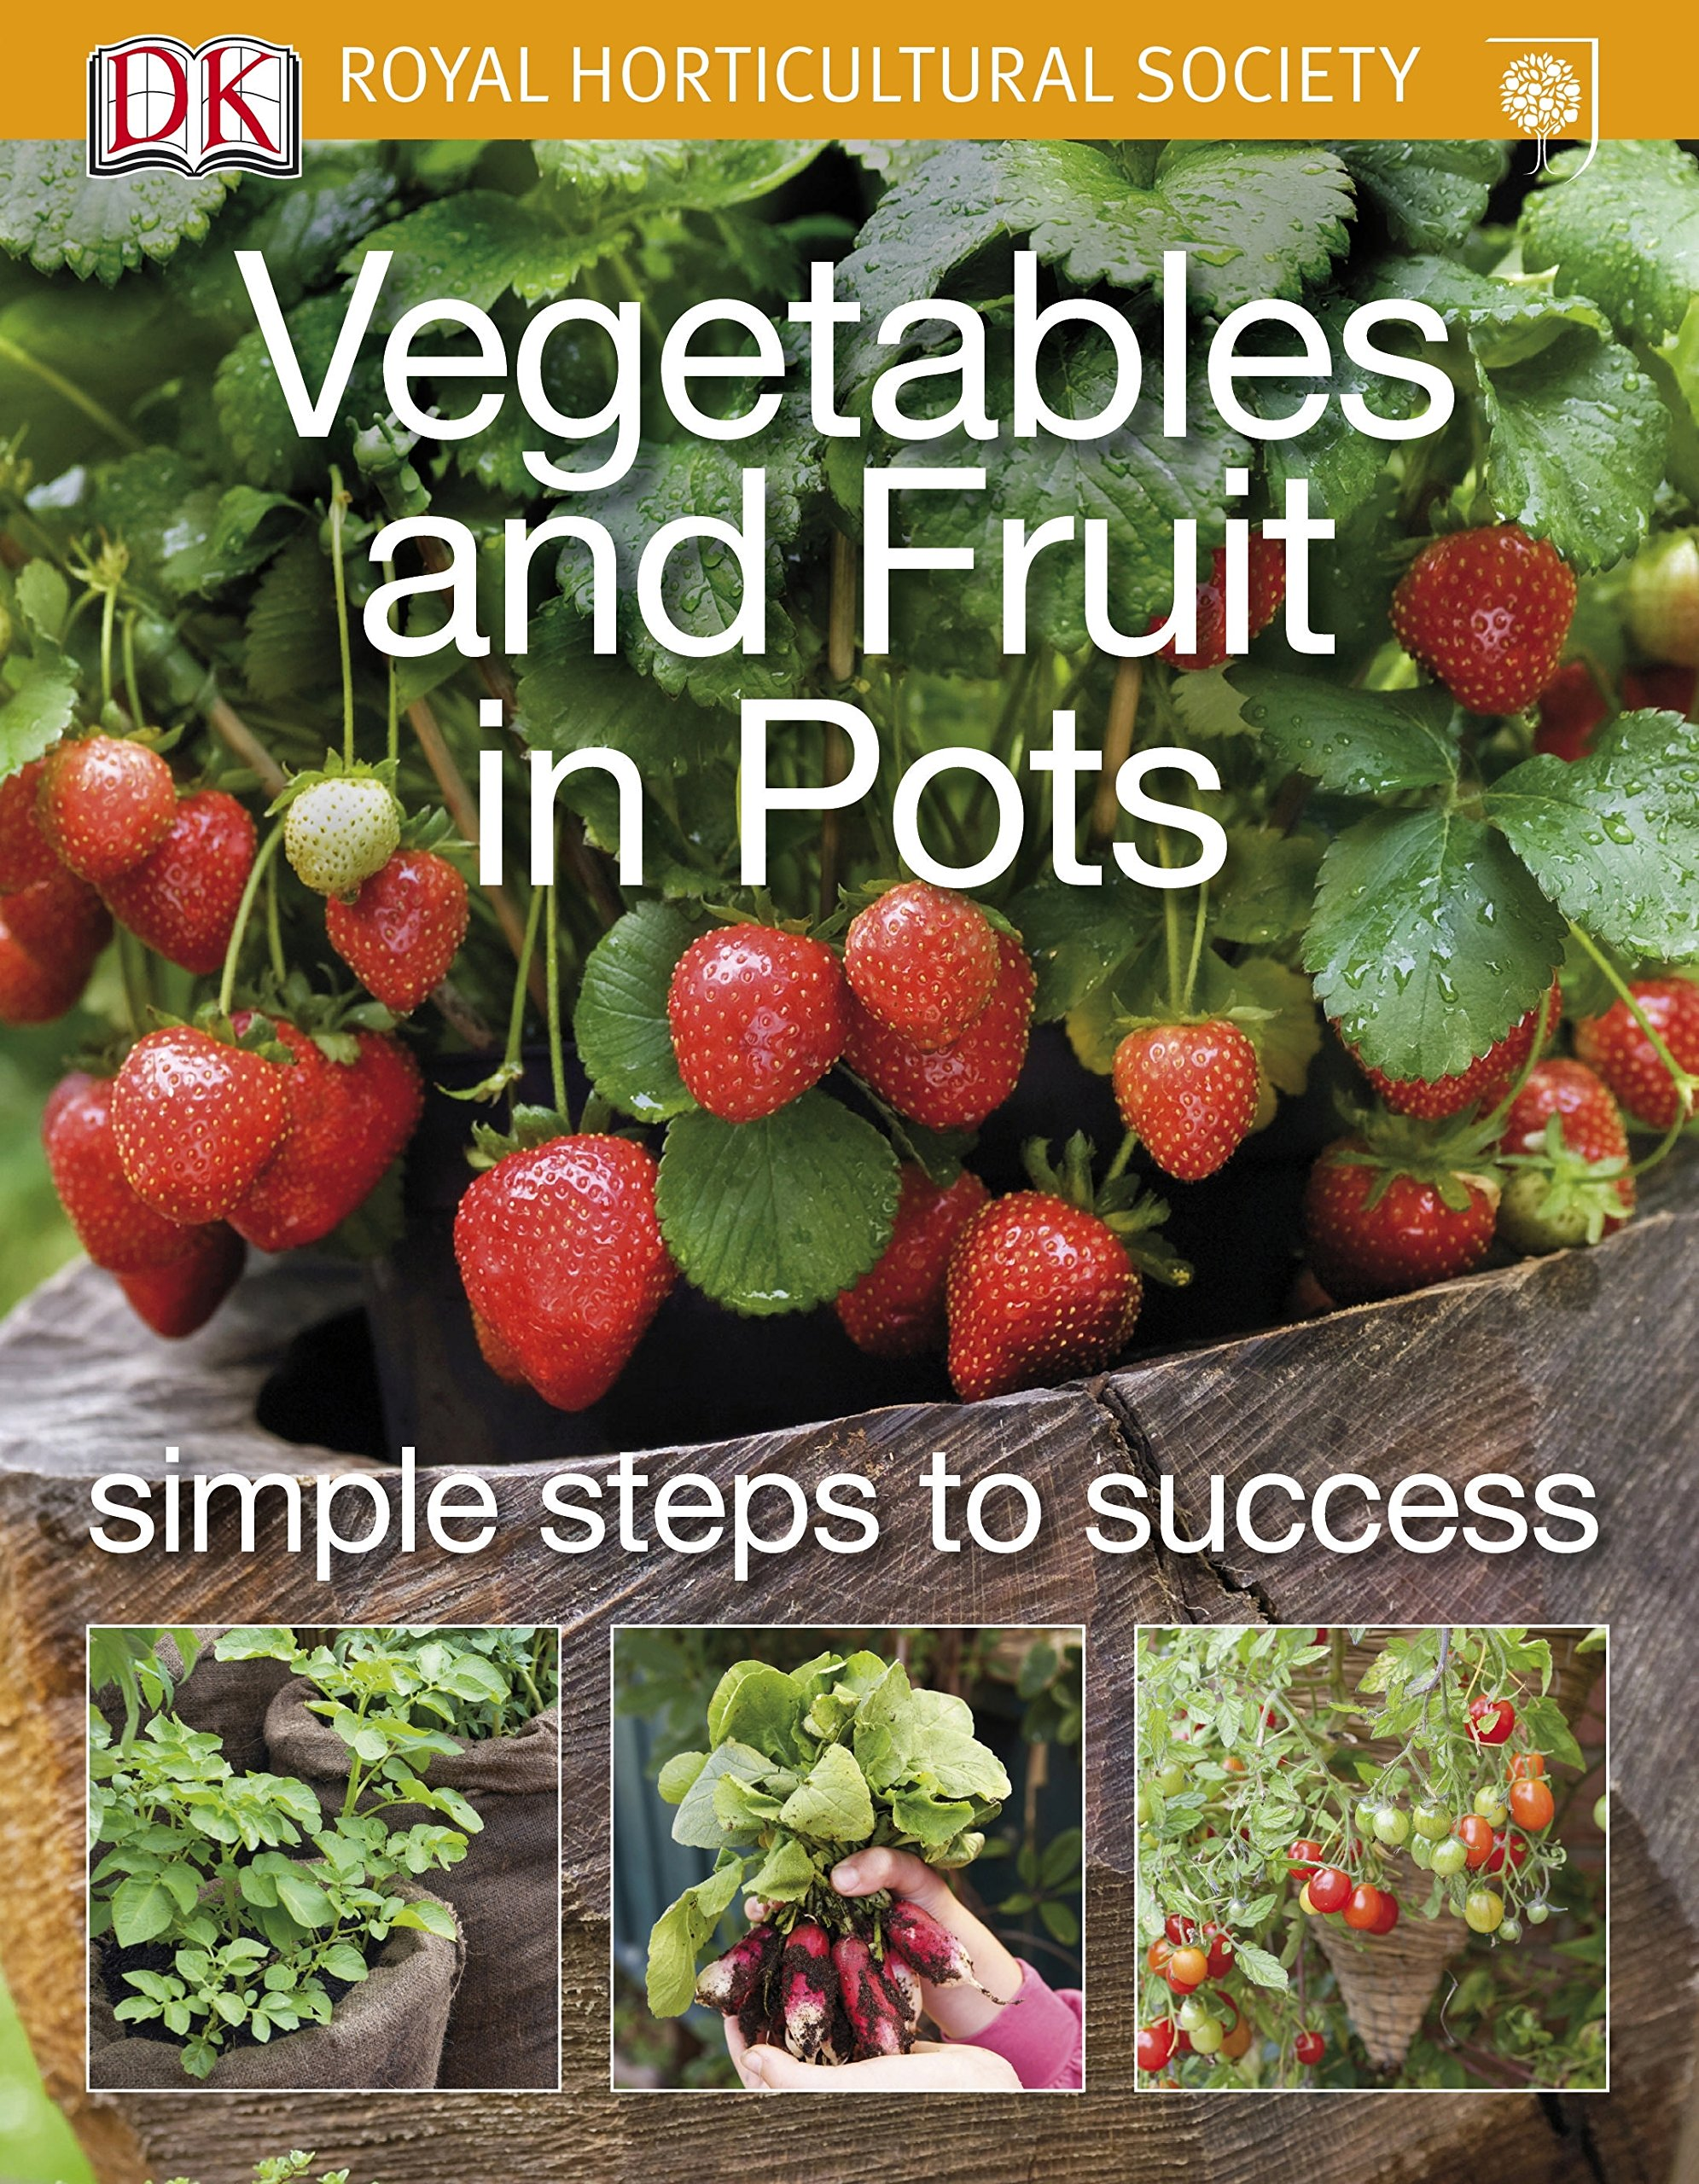 Vegetables and Fruit in Pots (Rhs Simple Steps to Success)